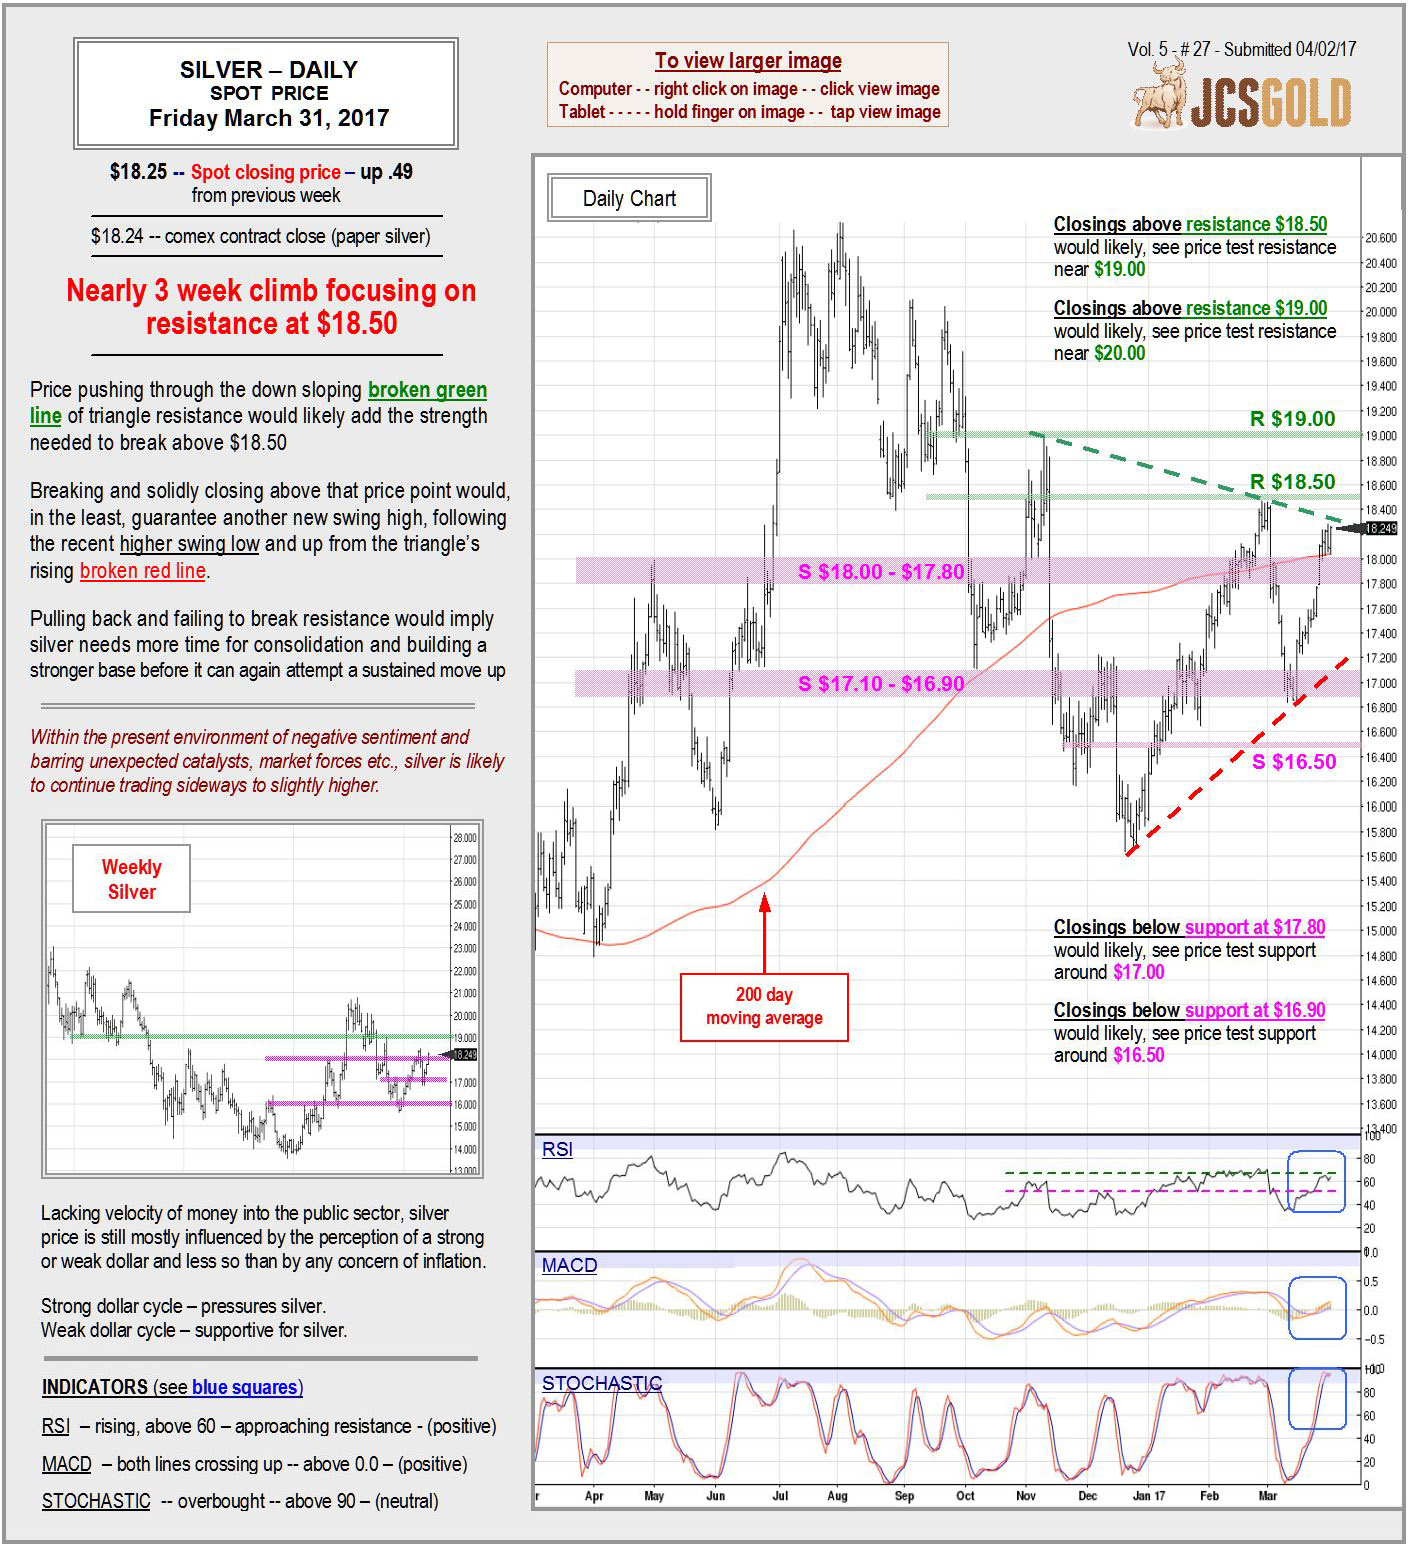 March 31, 2017 Chart & Commentary